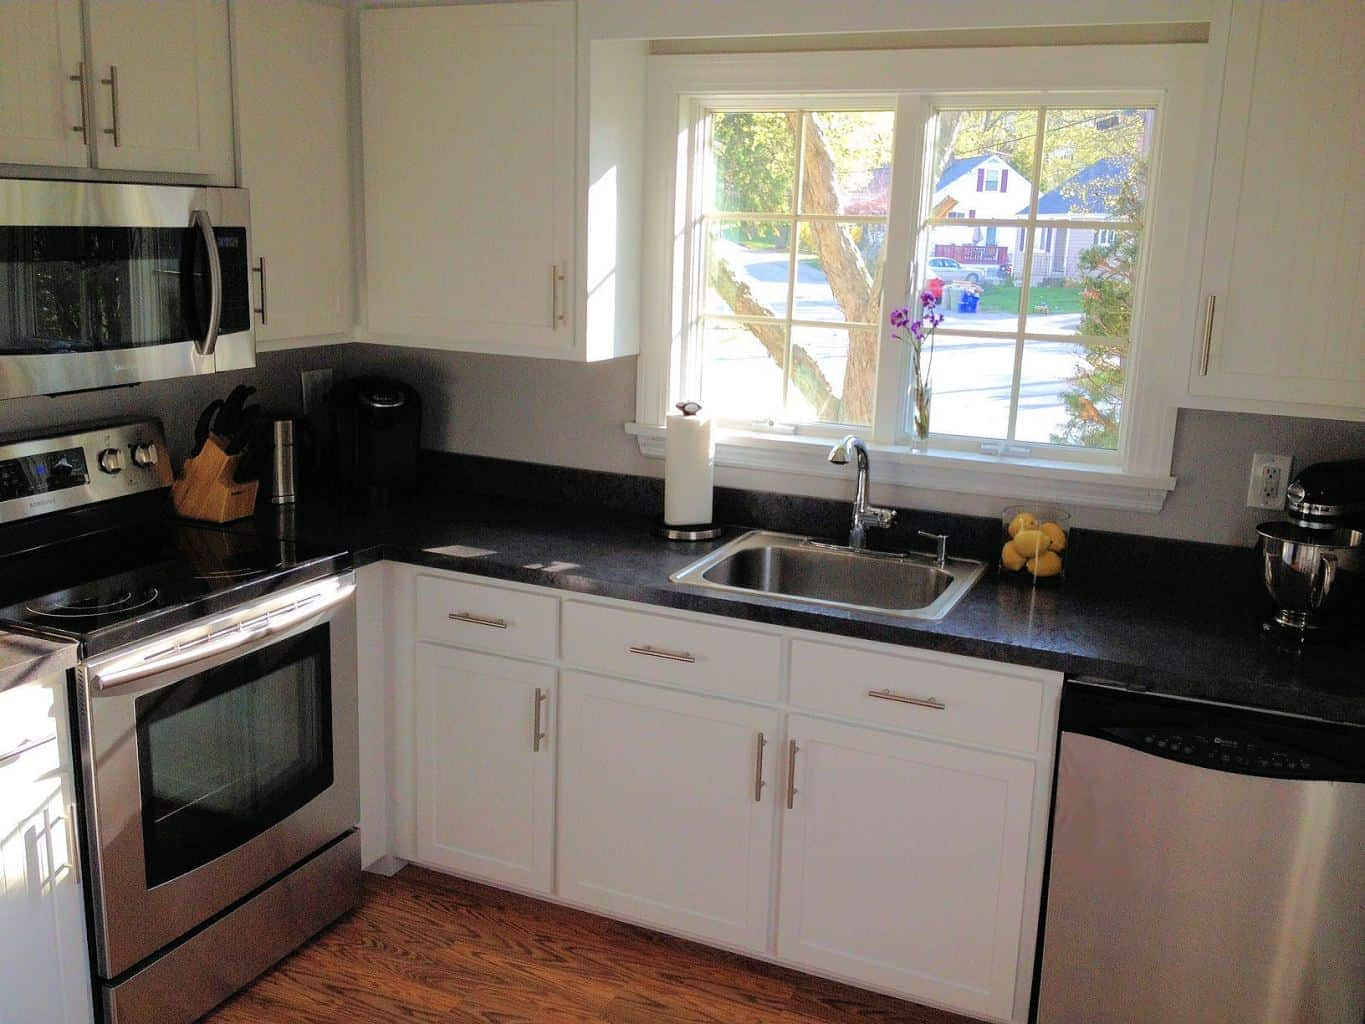 A kitchen with a large window above a kitchen sink, white cabinets and dark countertops